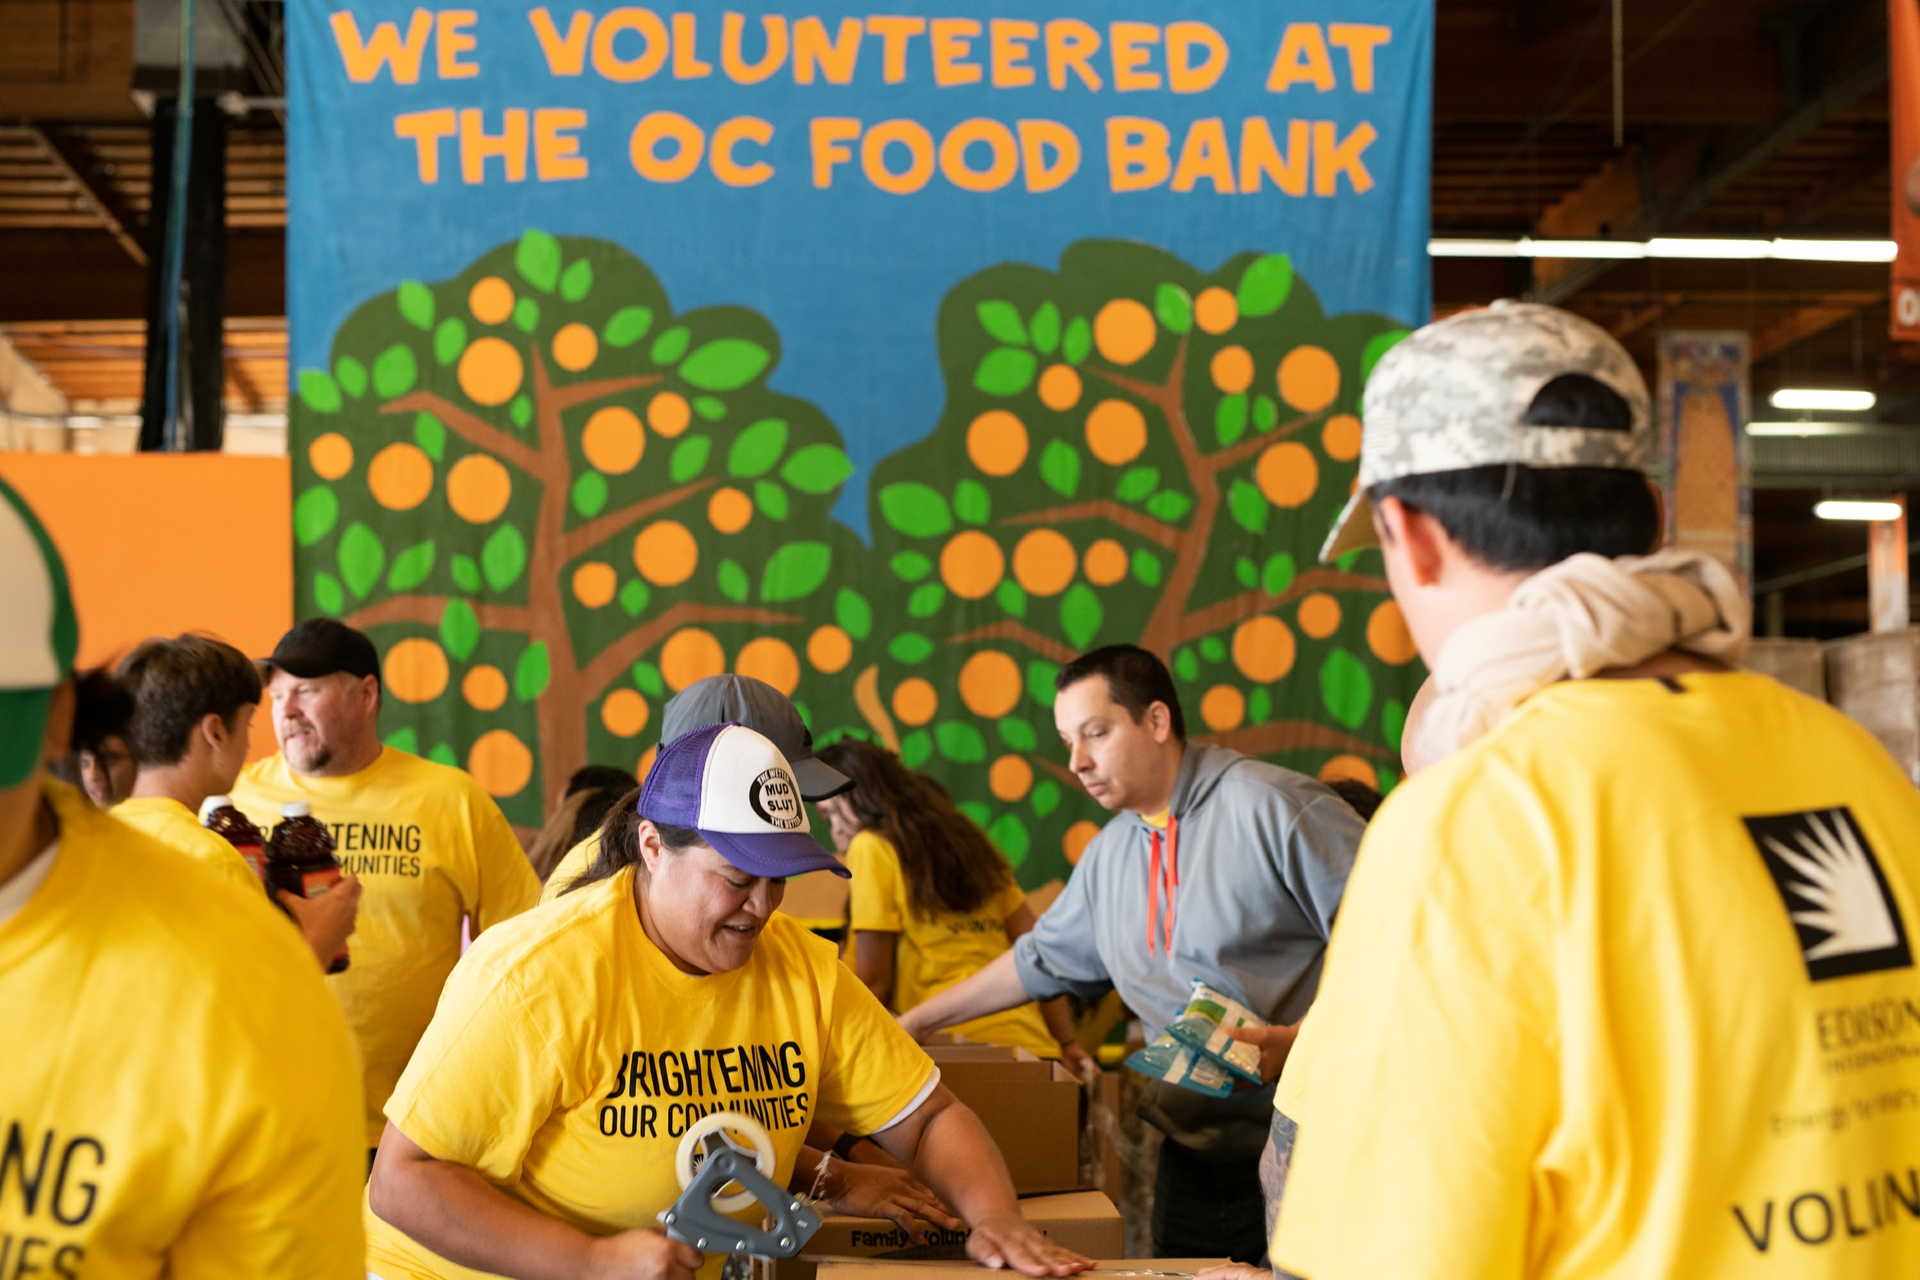 Edison volunteers seal food boxes at the Orange County Food Bank during National Family Volunteer Day.